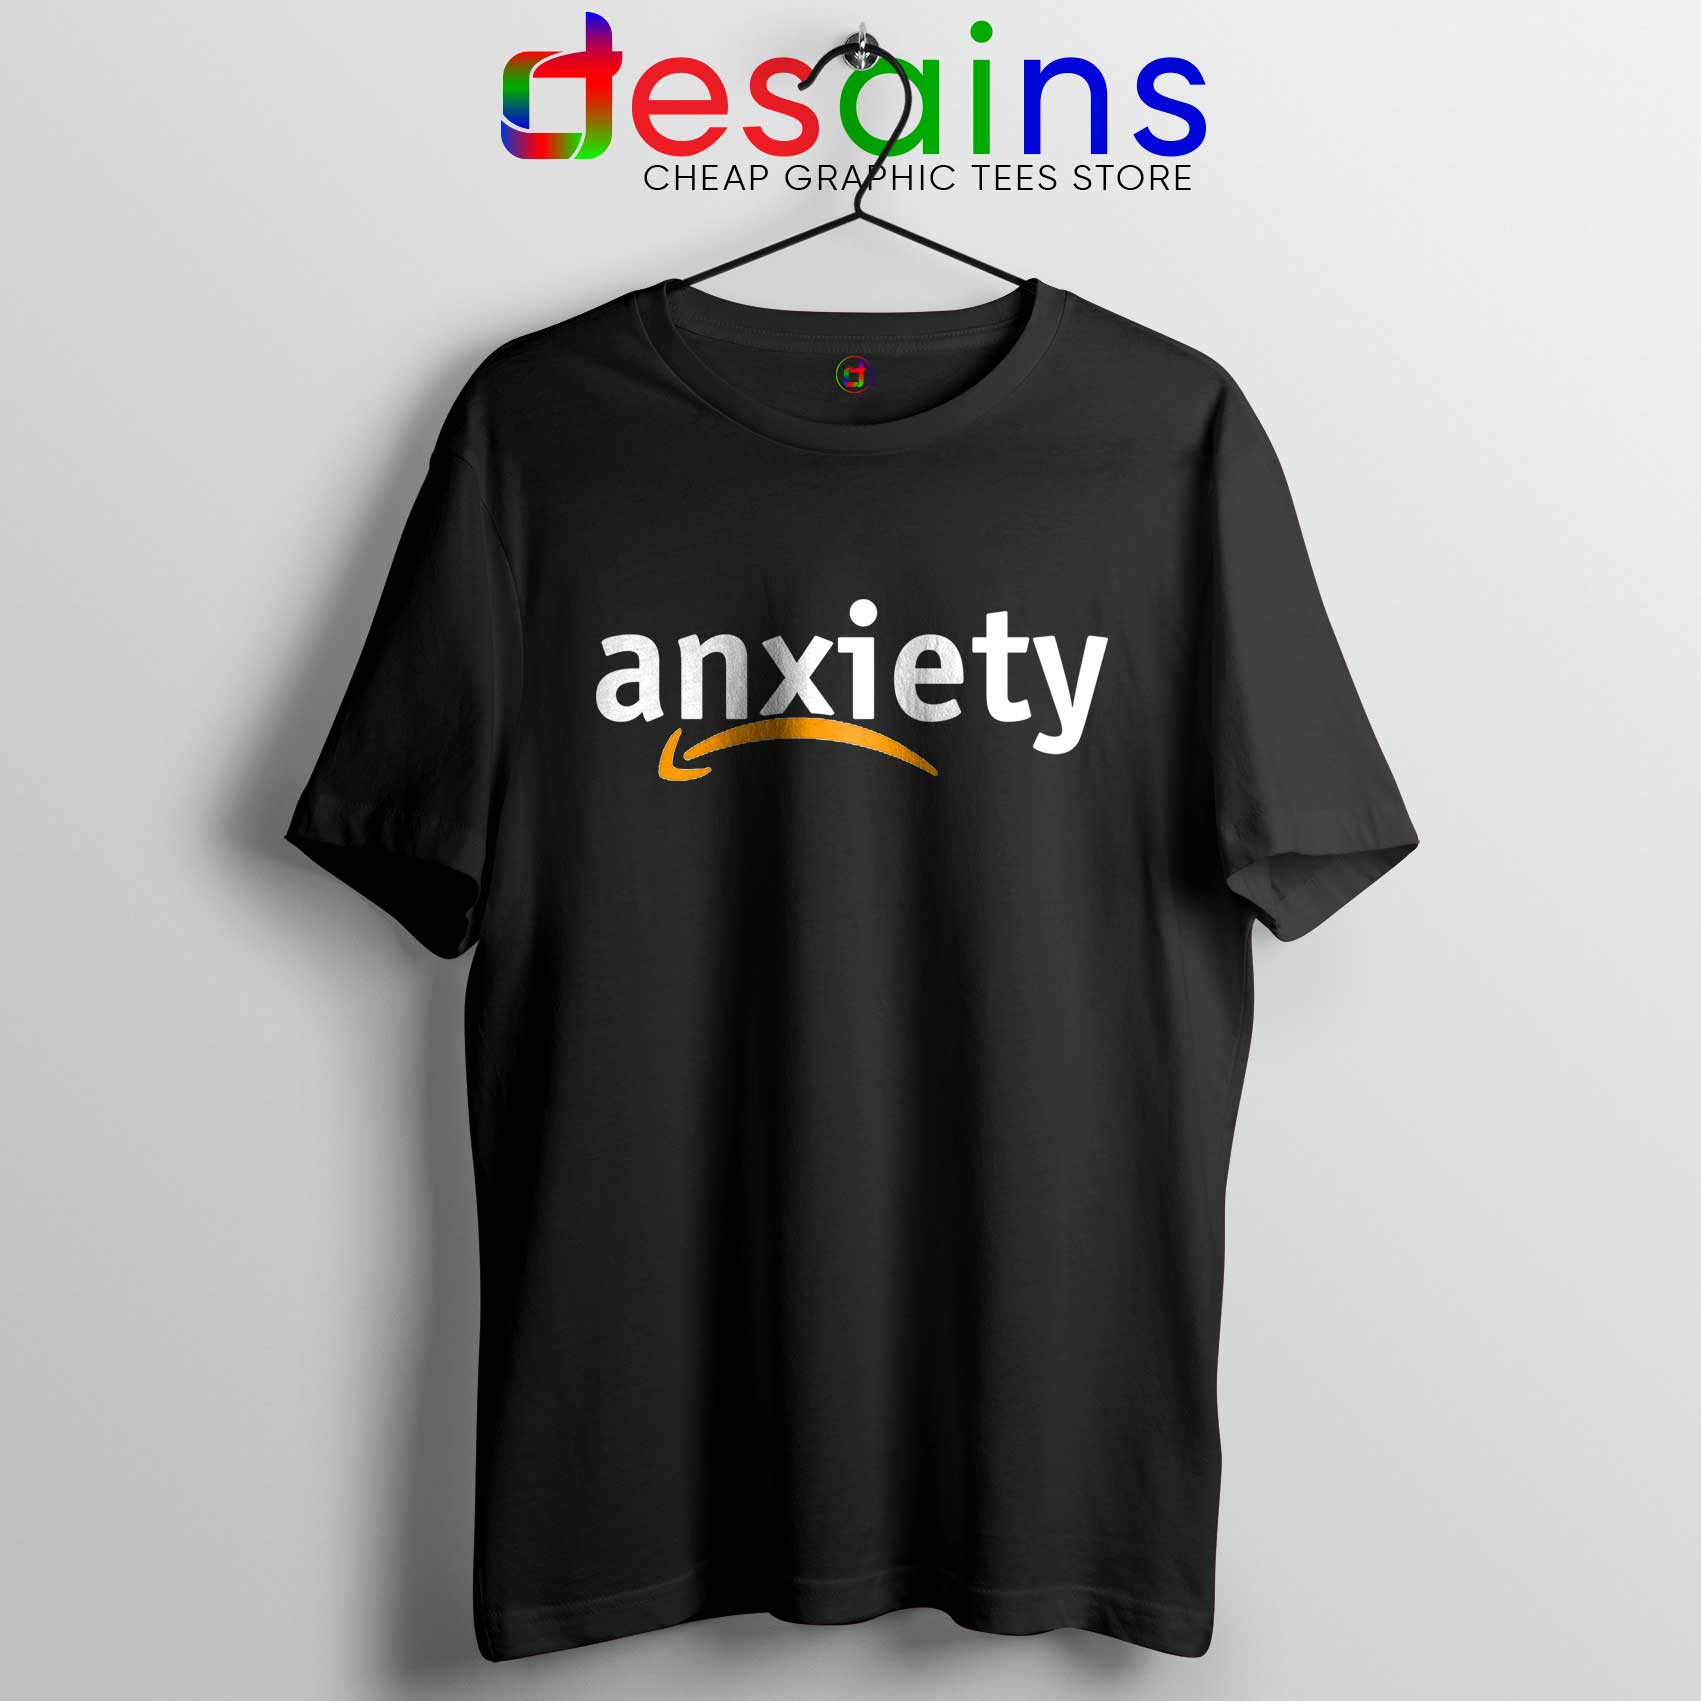 Best Tee Shirt Anxiety Amazon Logo Tshirt Funny Review.